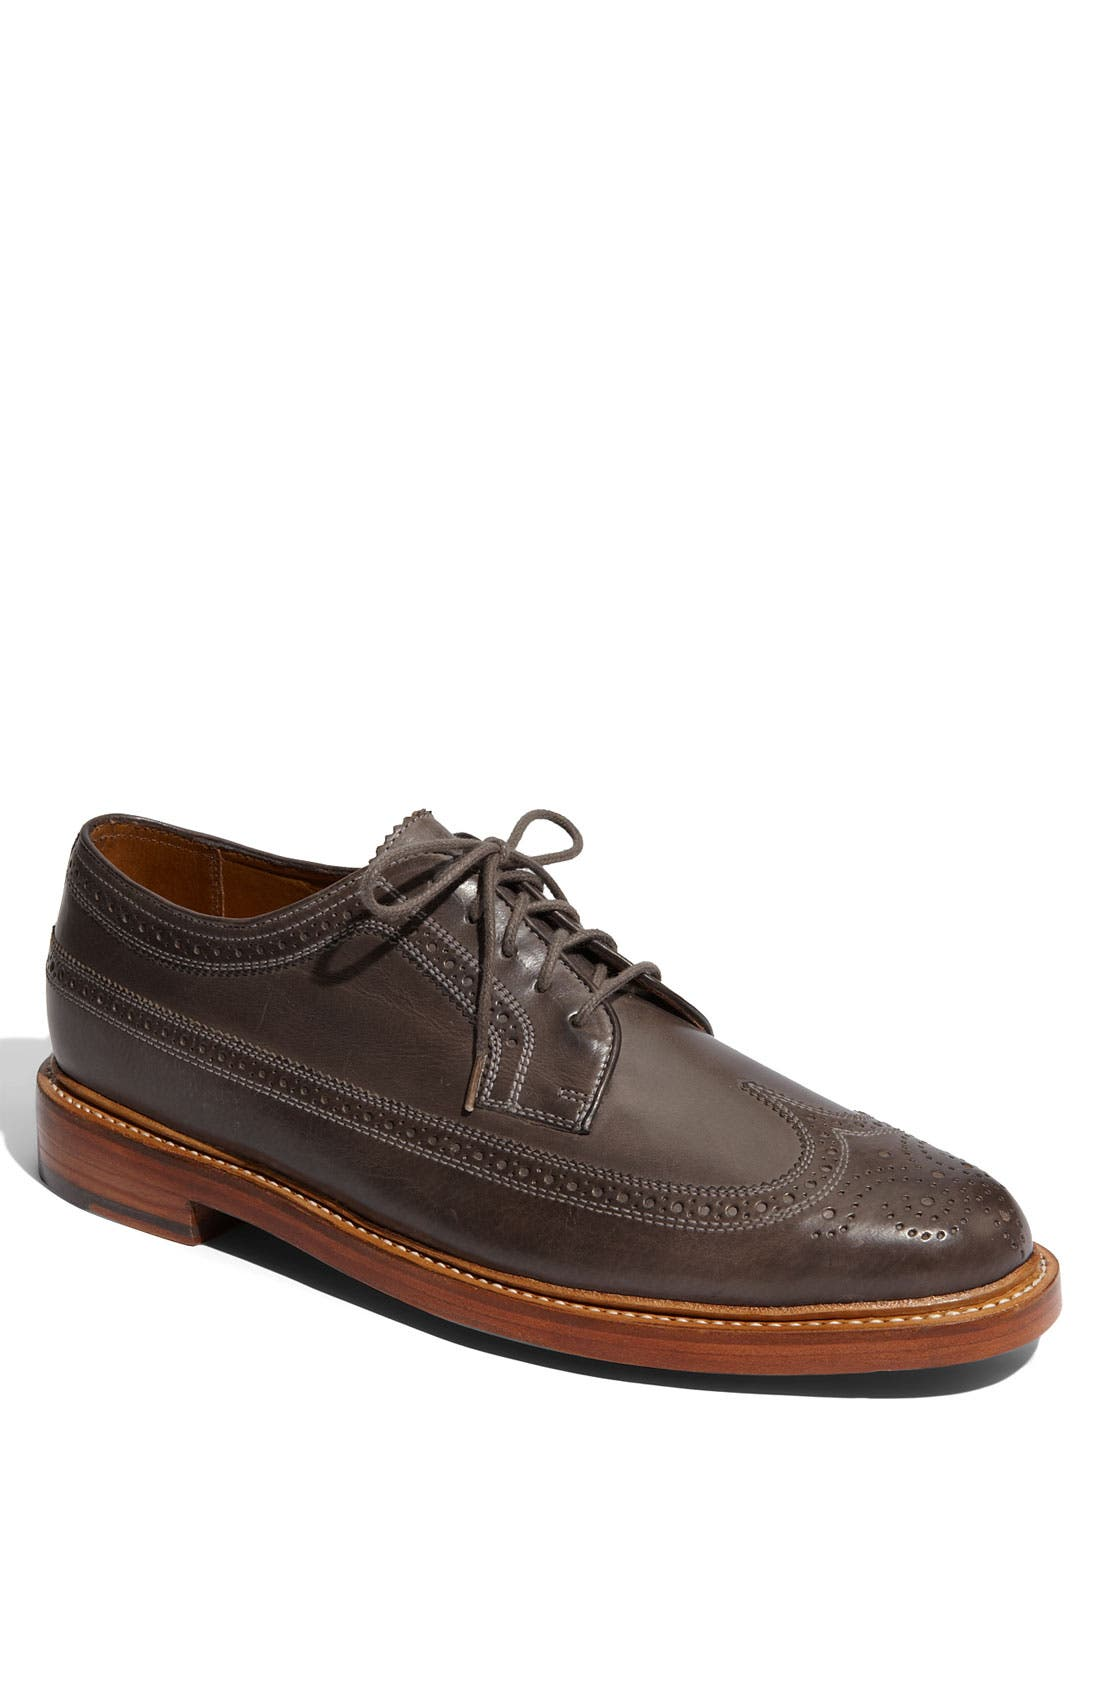 Alternate Image 1 Selected - Florsheim 'Veblen' Wingtip Oxford